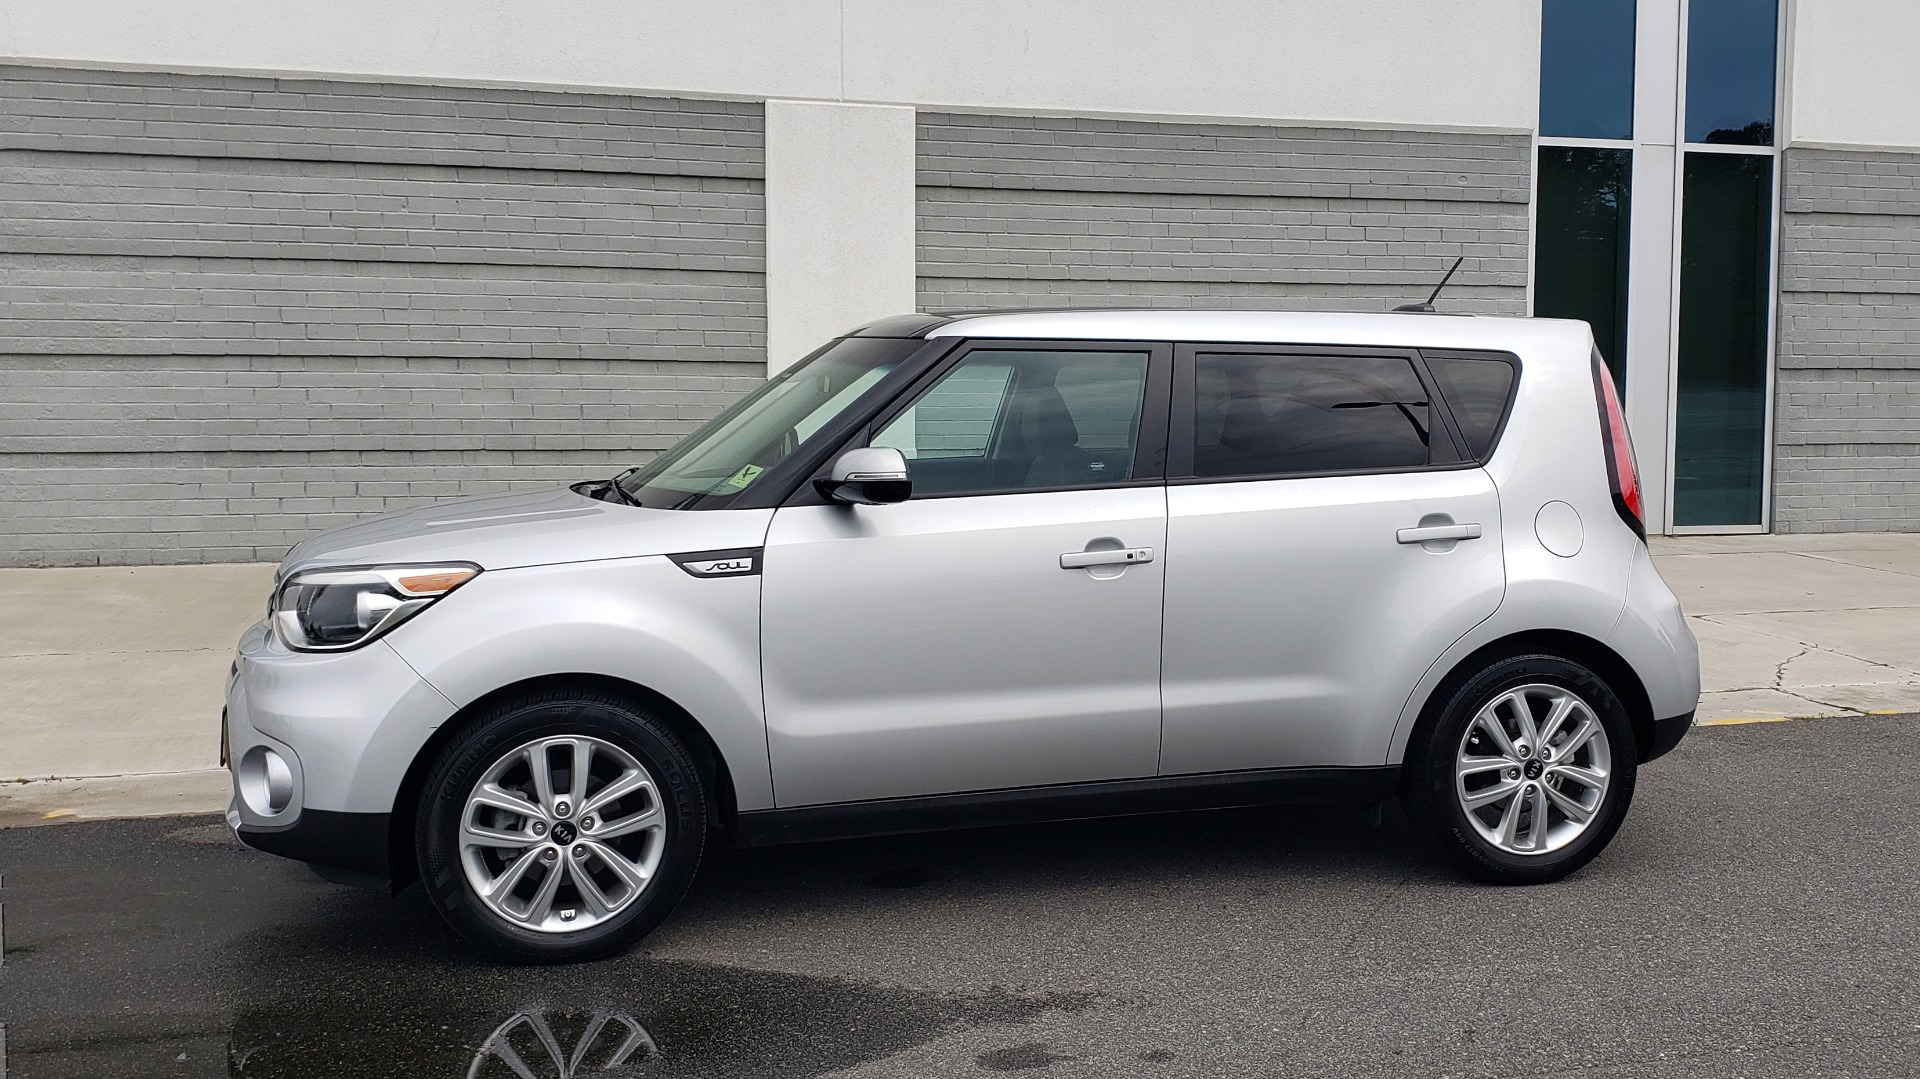 Used 2017 Kia SOUL PLUS / NAV / SUNROOF / LEATHER / HTD STS / REARVIEW for sale $16,995 at Formula Imports in Charlotte NC 28227 6